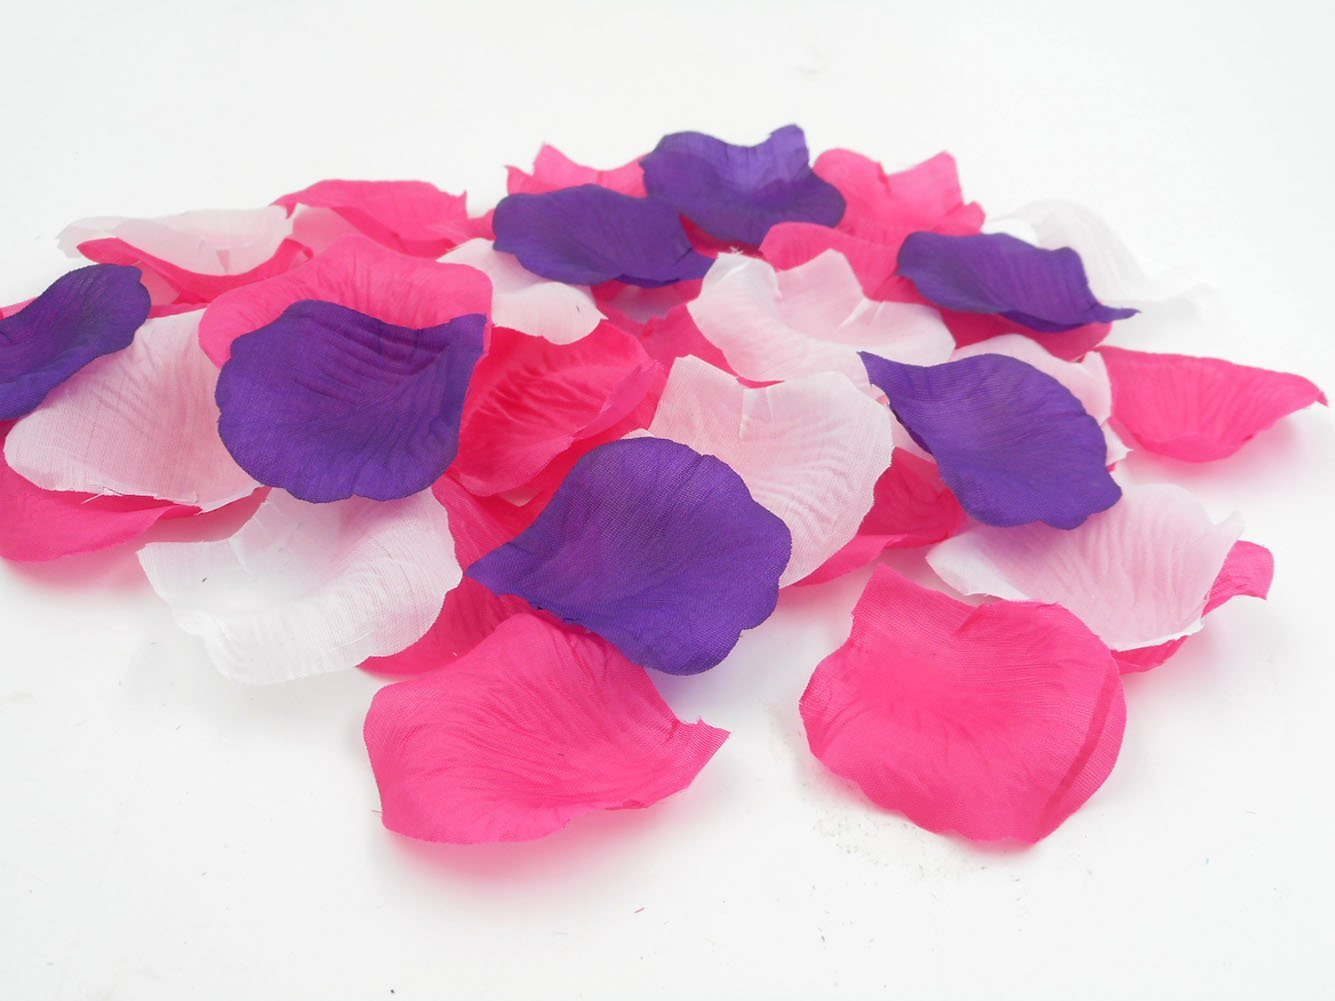 Cheap lily flower petals find lily flower petals deals on line at get quotations 3000pcs artificial fabric silk rose flower petals for weddings bulk dark purple hot pink white bridal mightylinksfo